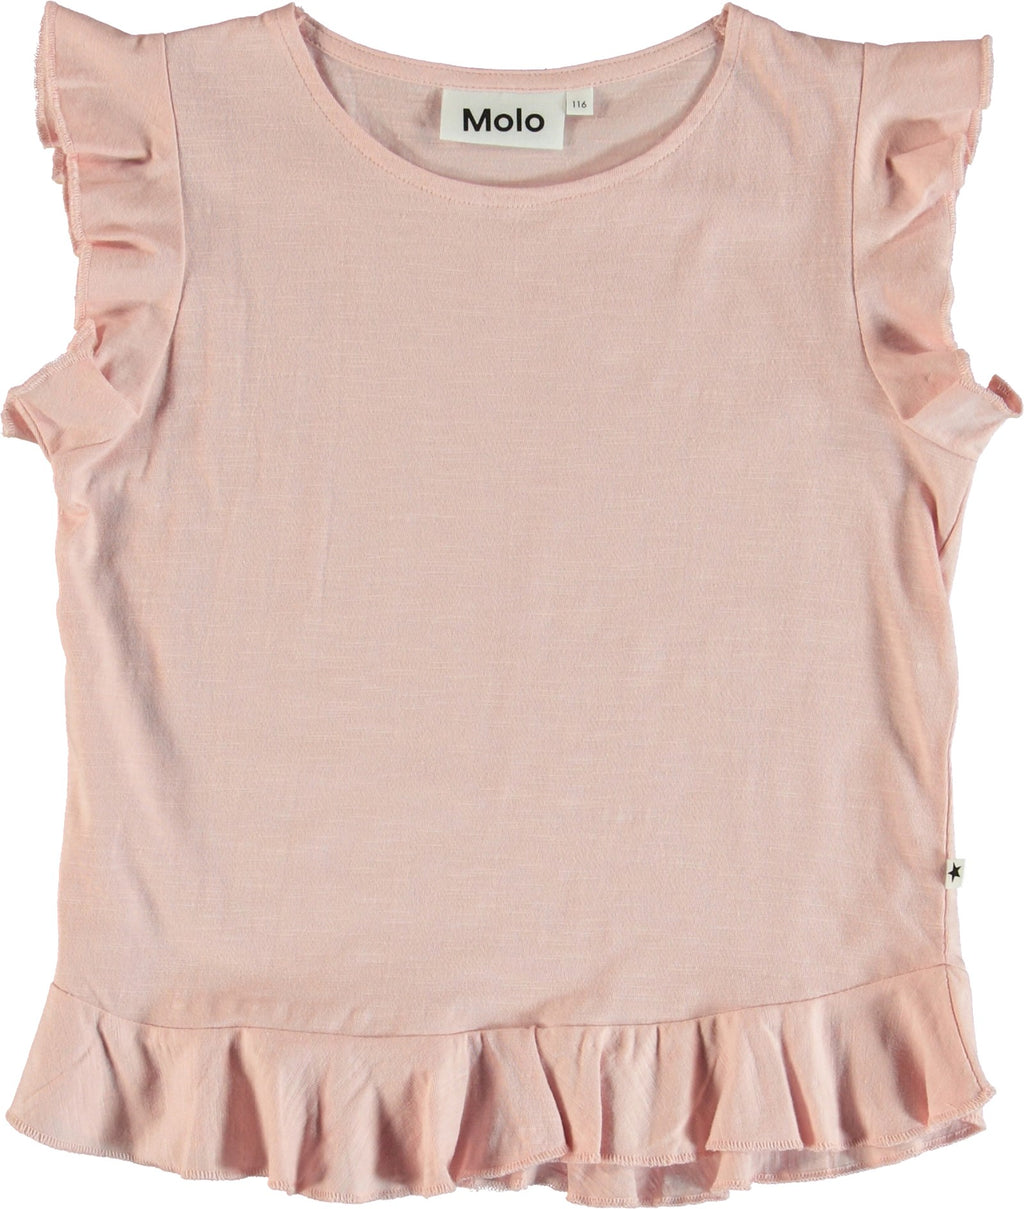 Designer Kids Fashion at Bloom Moda Online Children's Boutique - Molo Rabia Shirt,  Blouse